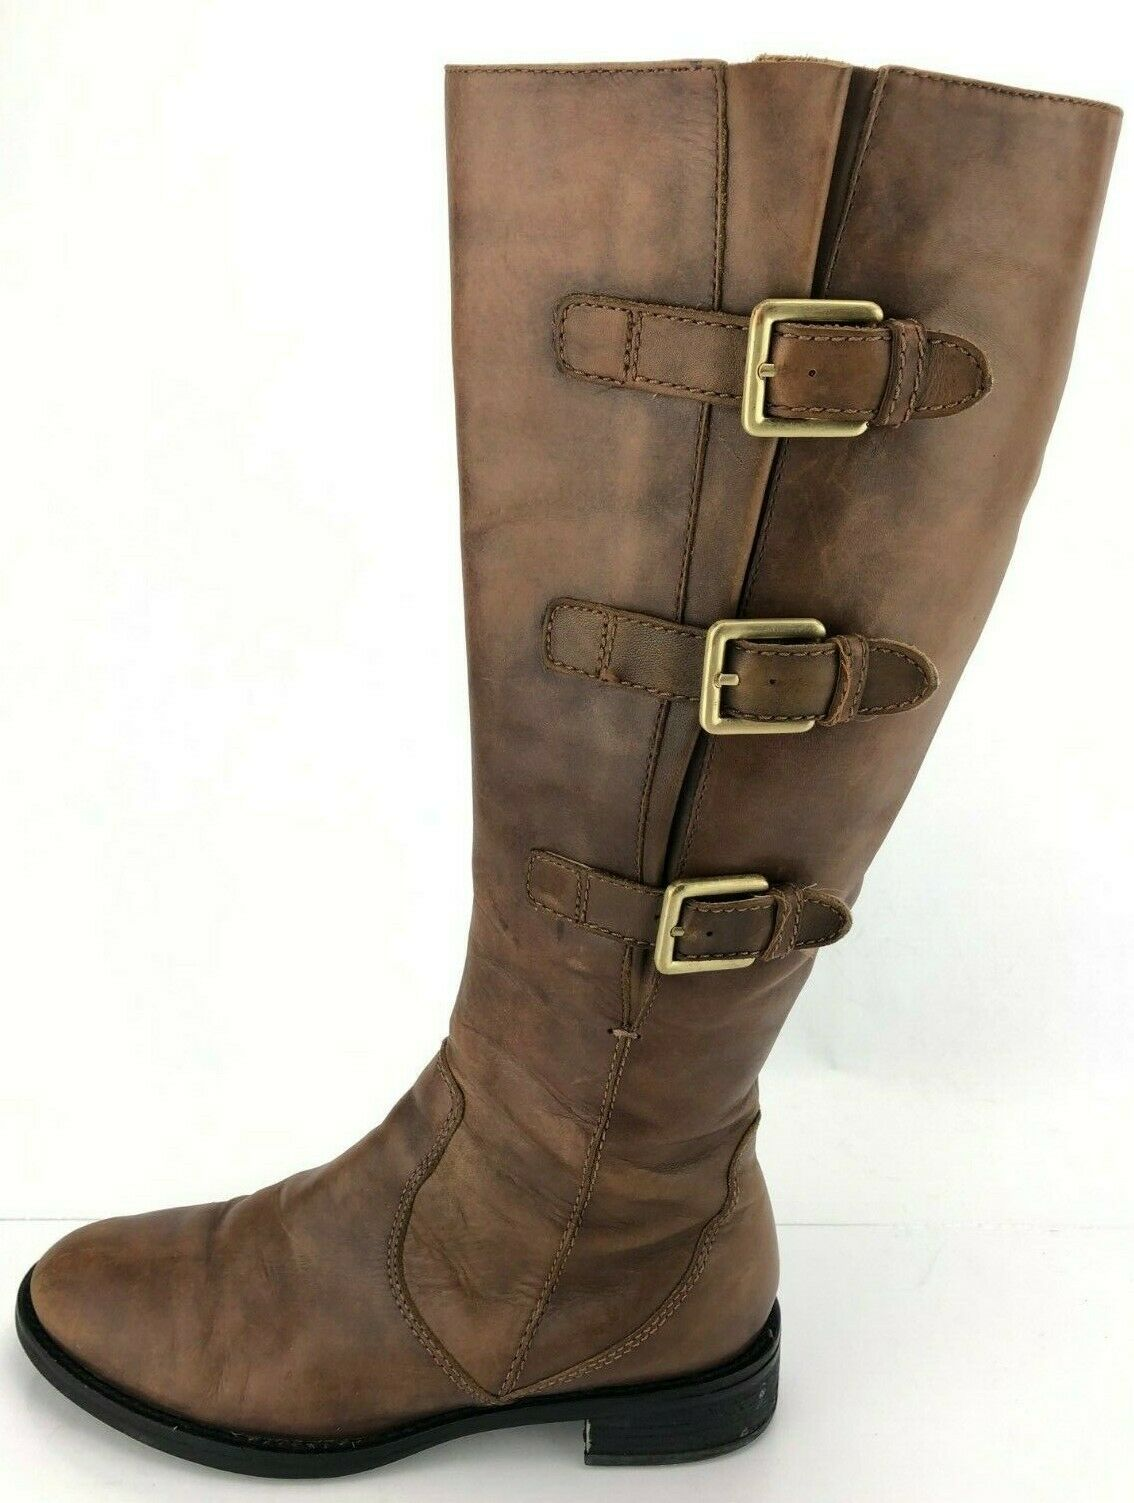 Ecco Hobart Riding Boots Brown Leather Zip Buckle Knee High Womens 38 US 7,7.5